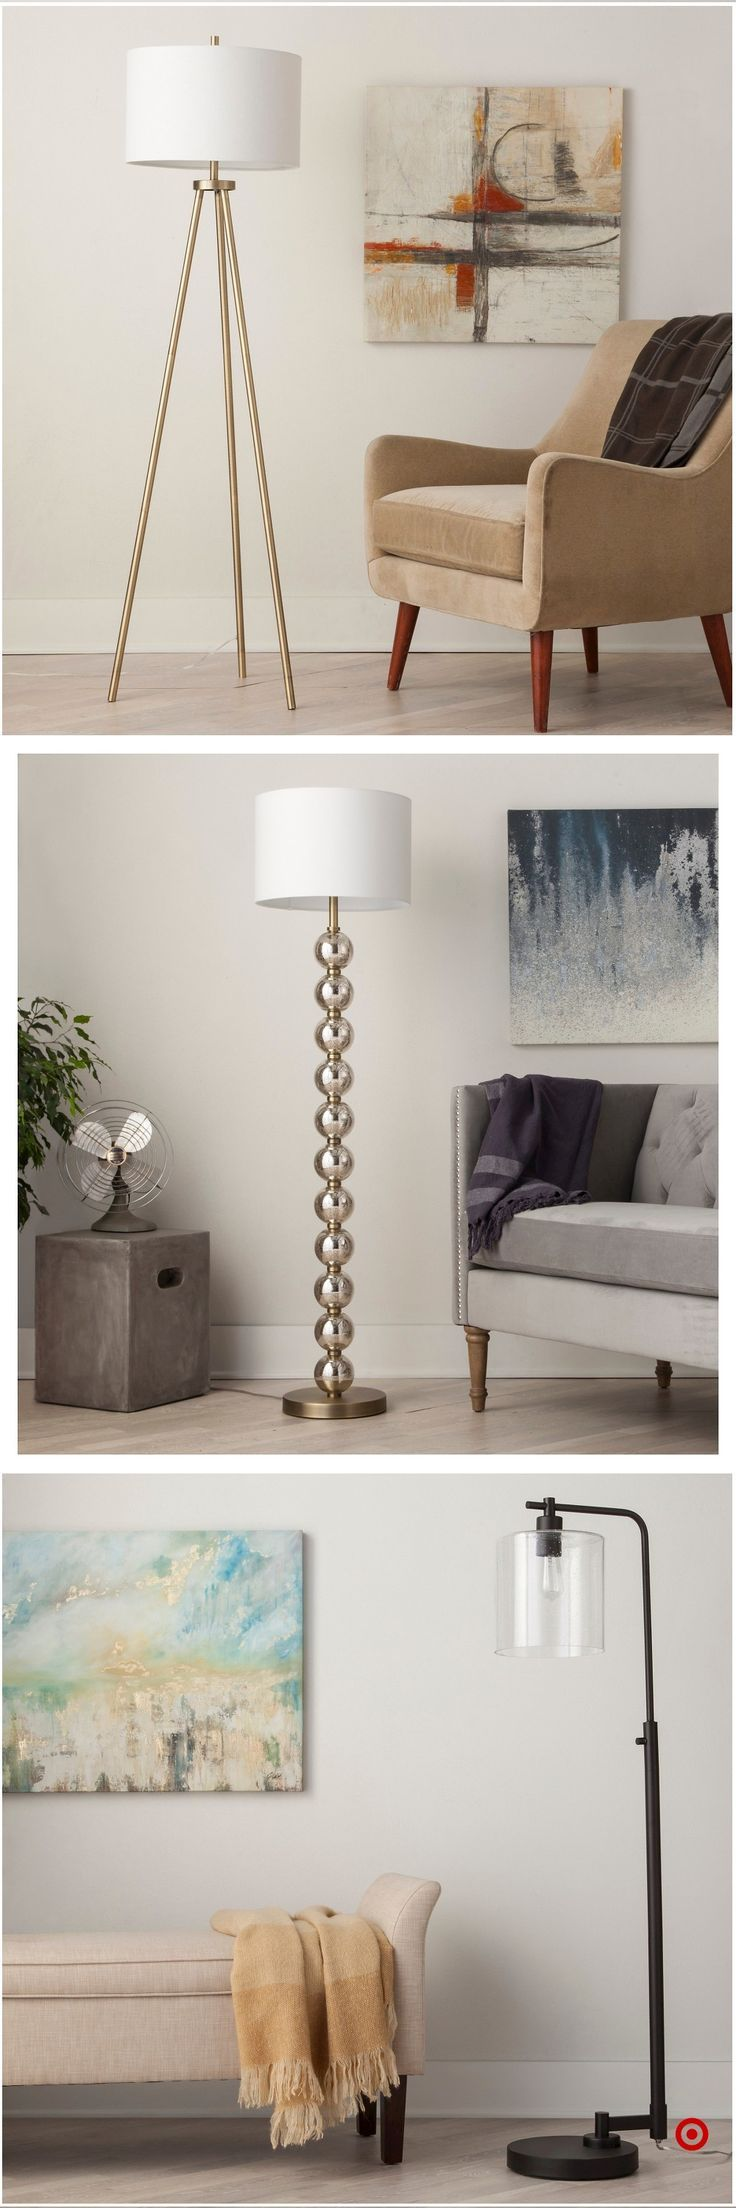 48+ Floor lamps for living room target ideas